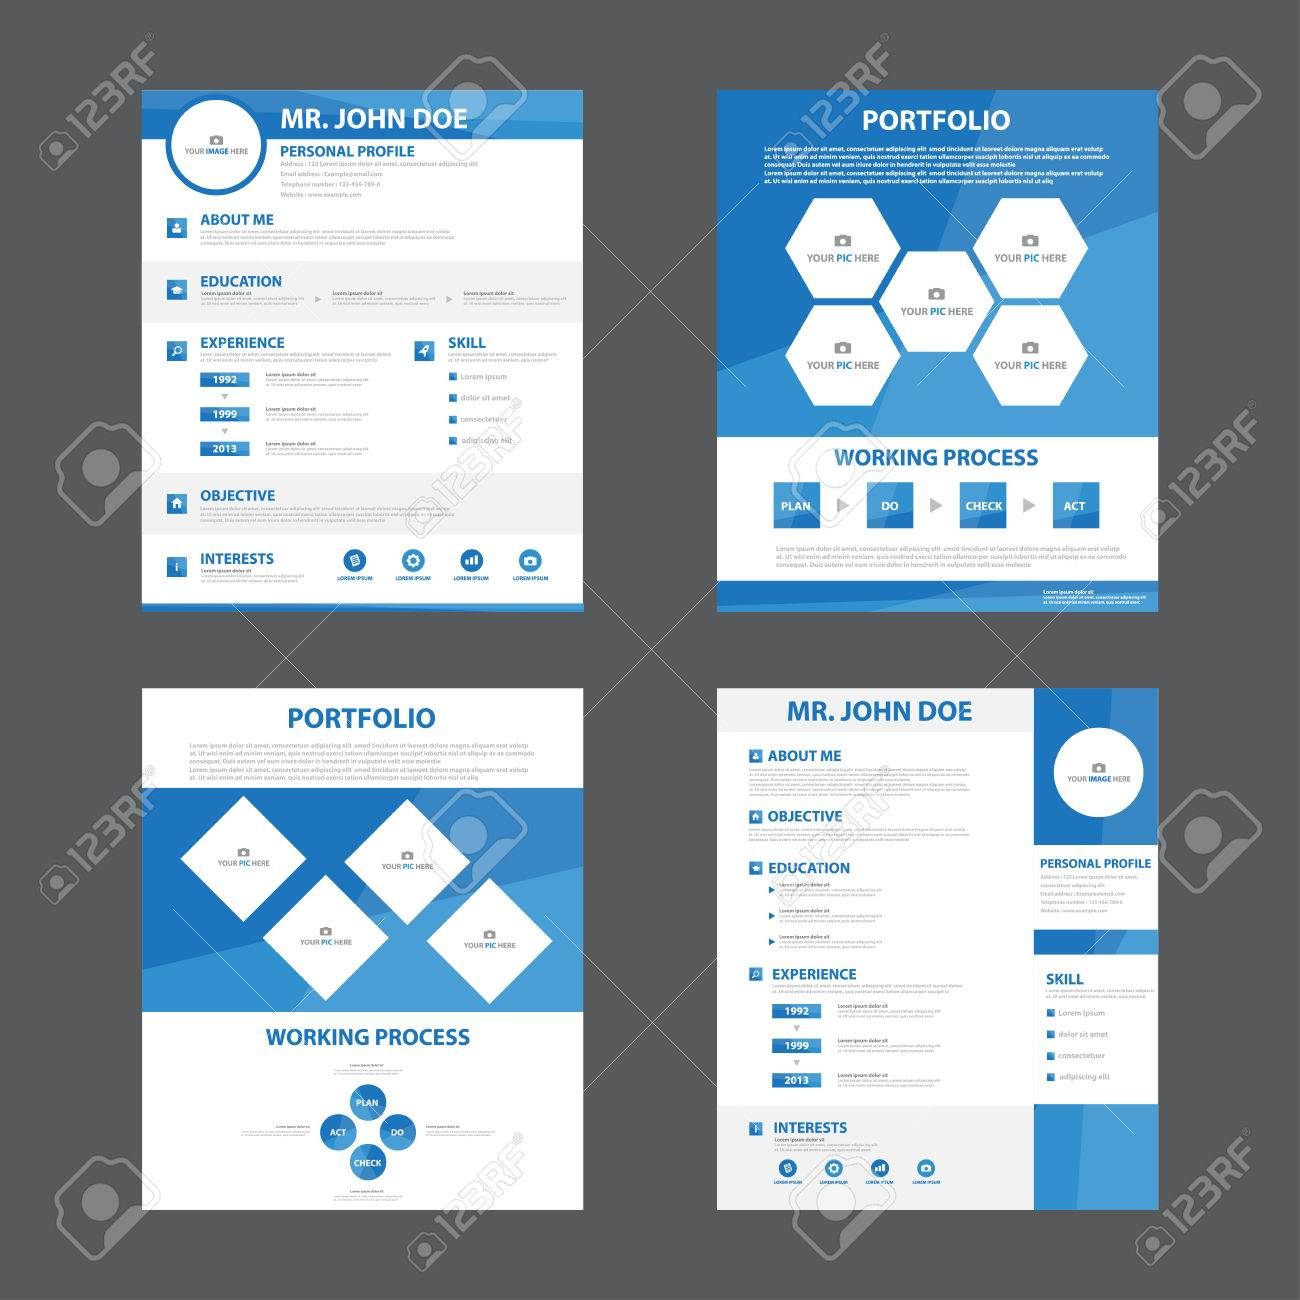 Smart creative resume business profile cv vitae template layout smart creative resume business profile cv vitae template layout flat design for job application advertising marketing friedricerecipe Image collections